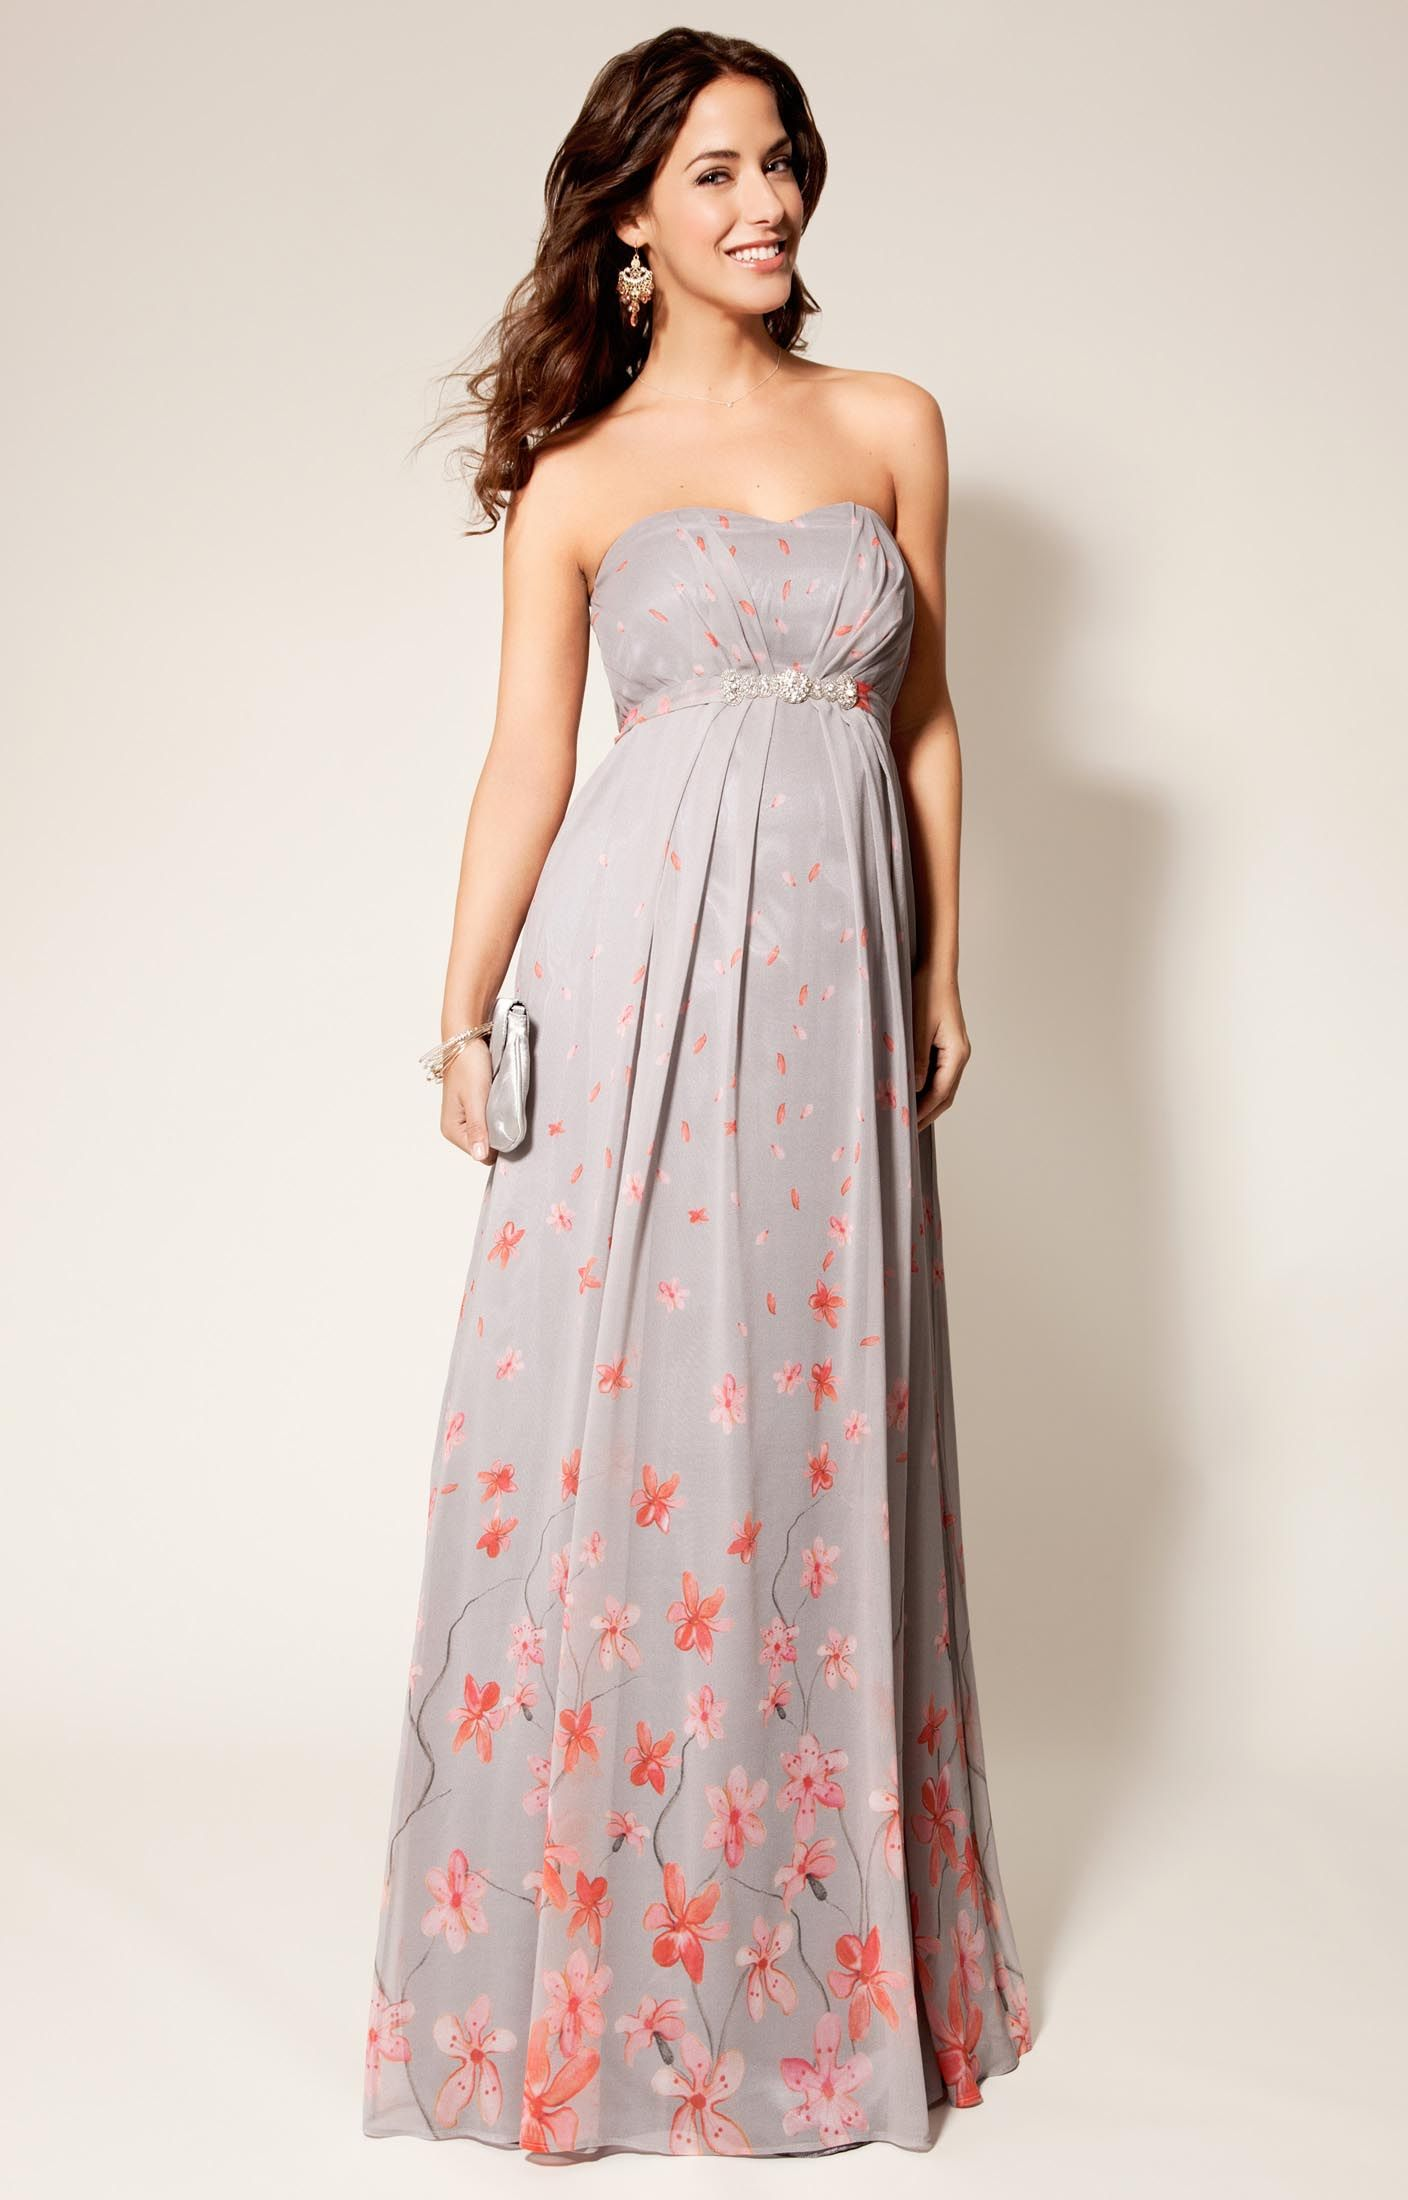 Breastfeeding dresses for weddings  Annabella Gown  Maternity gowns Peach blossoms and Tiffany rose